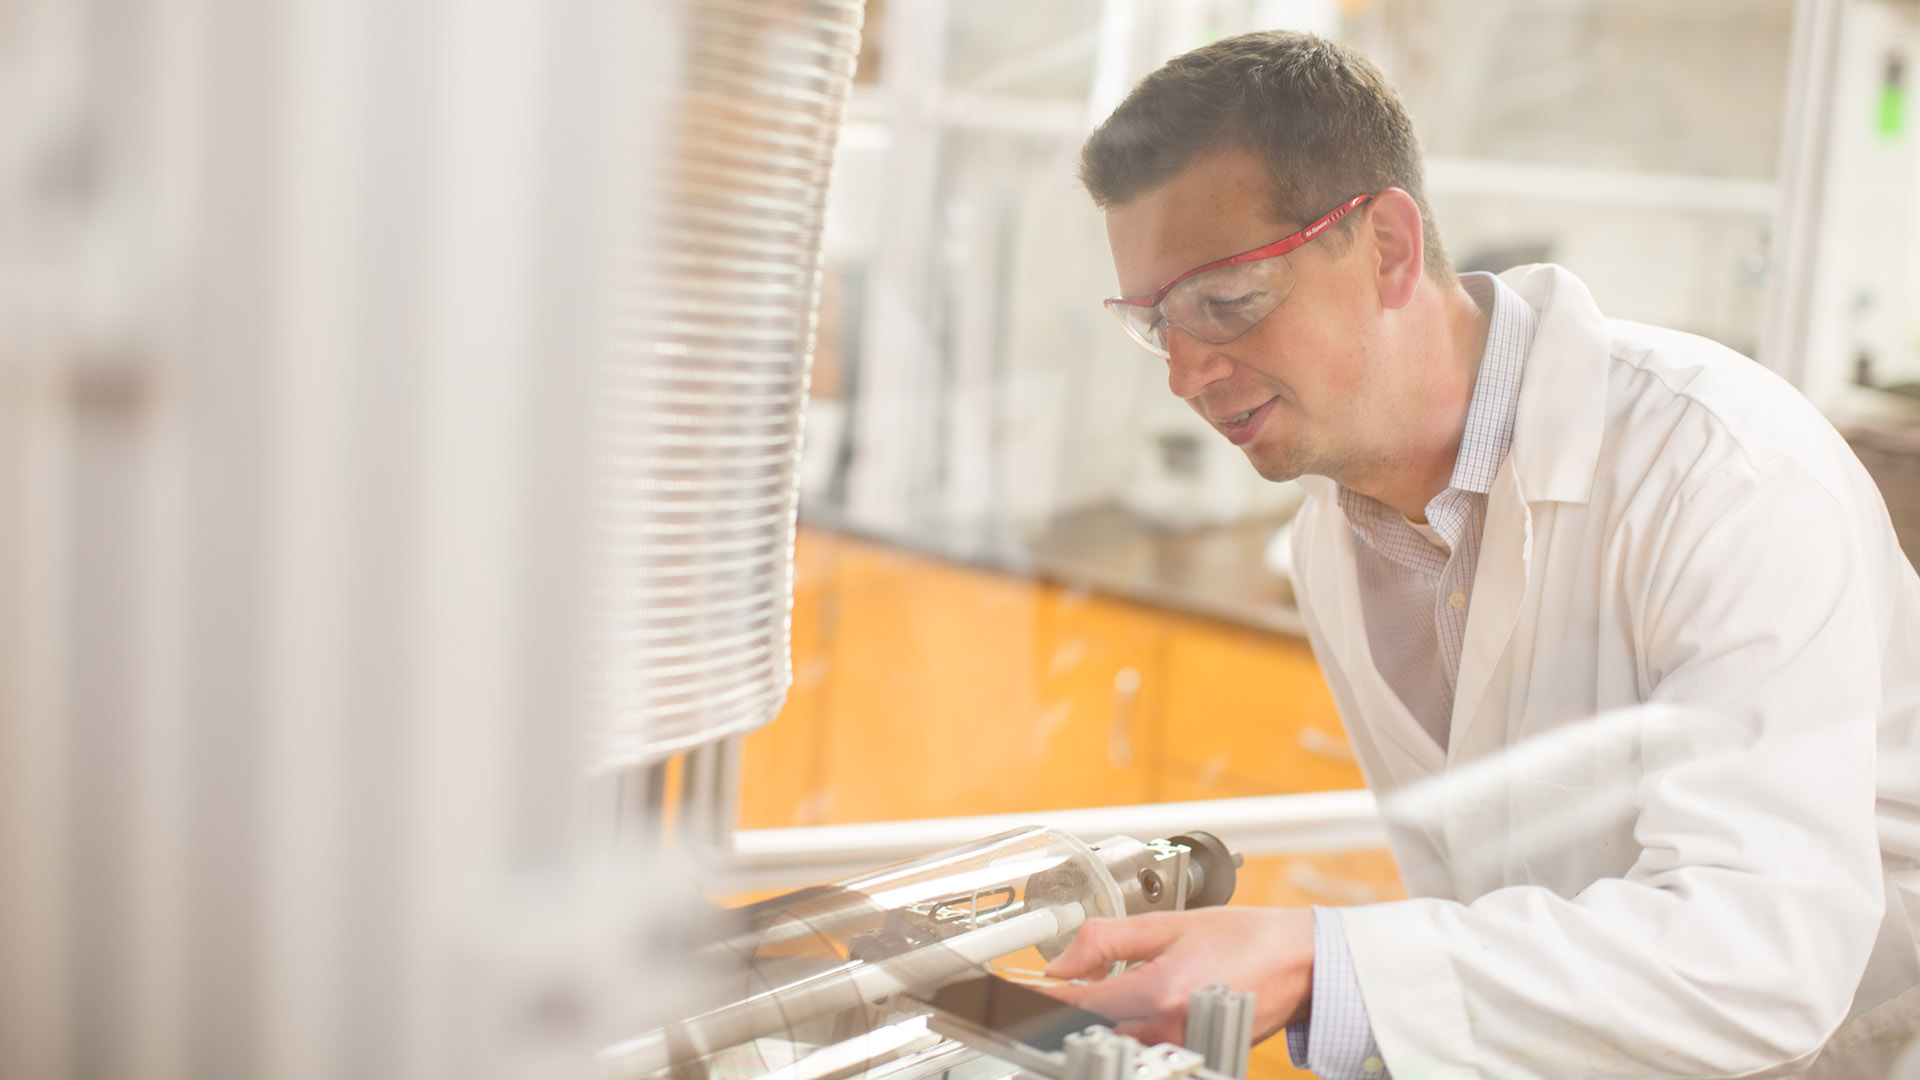 Philip Bradford researching carbon nanotubes in his lab